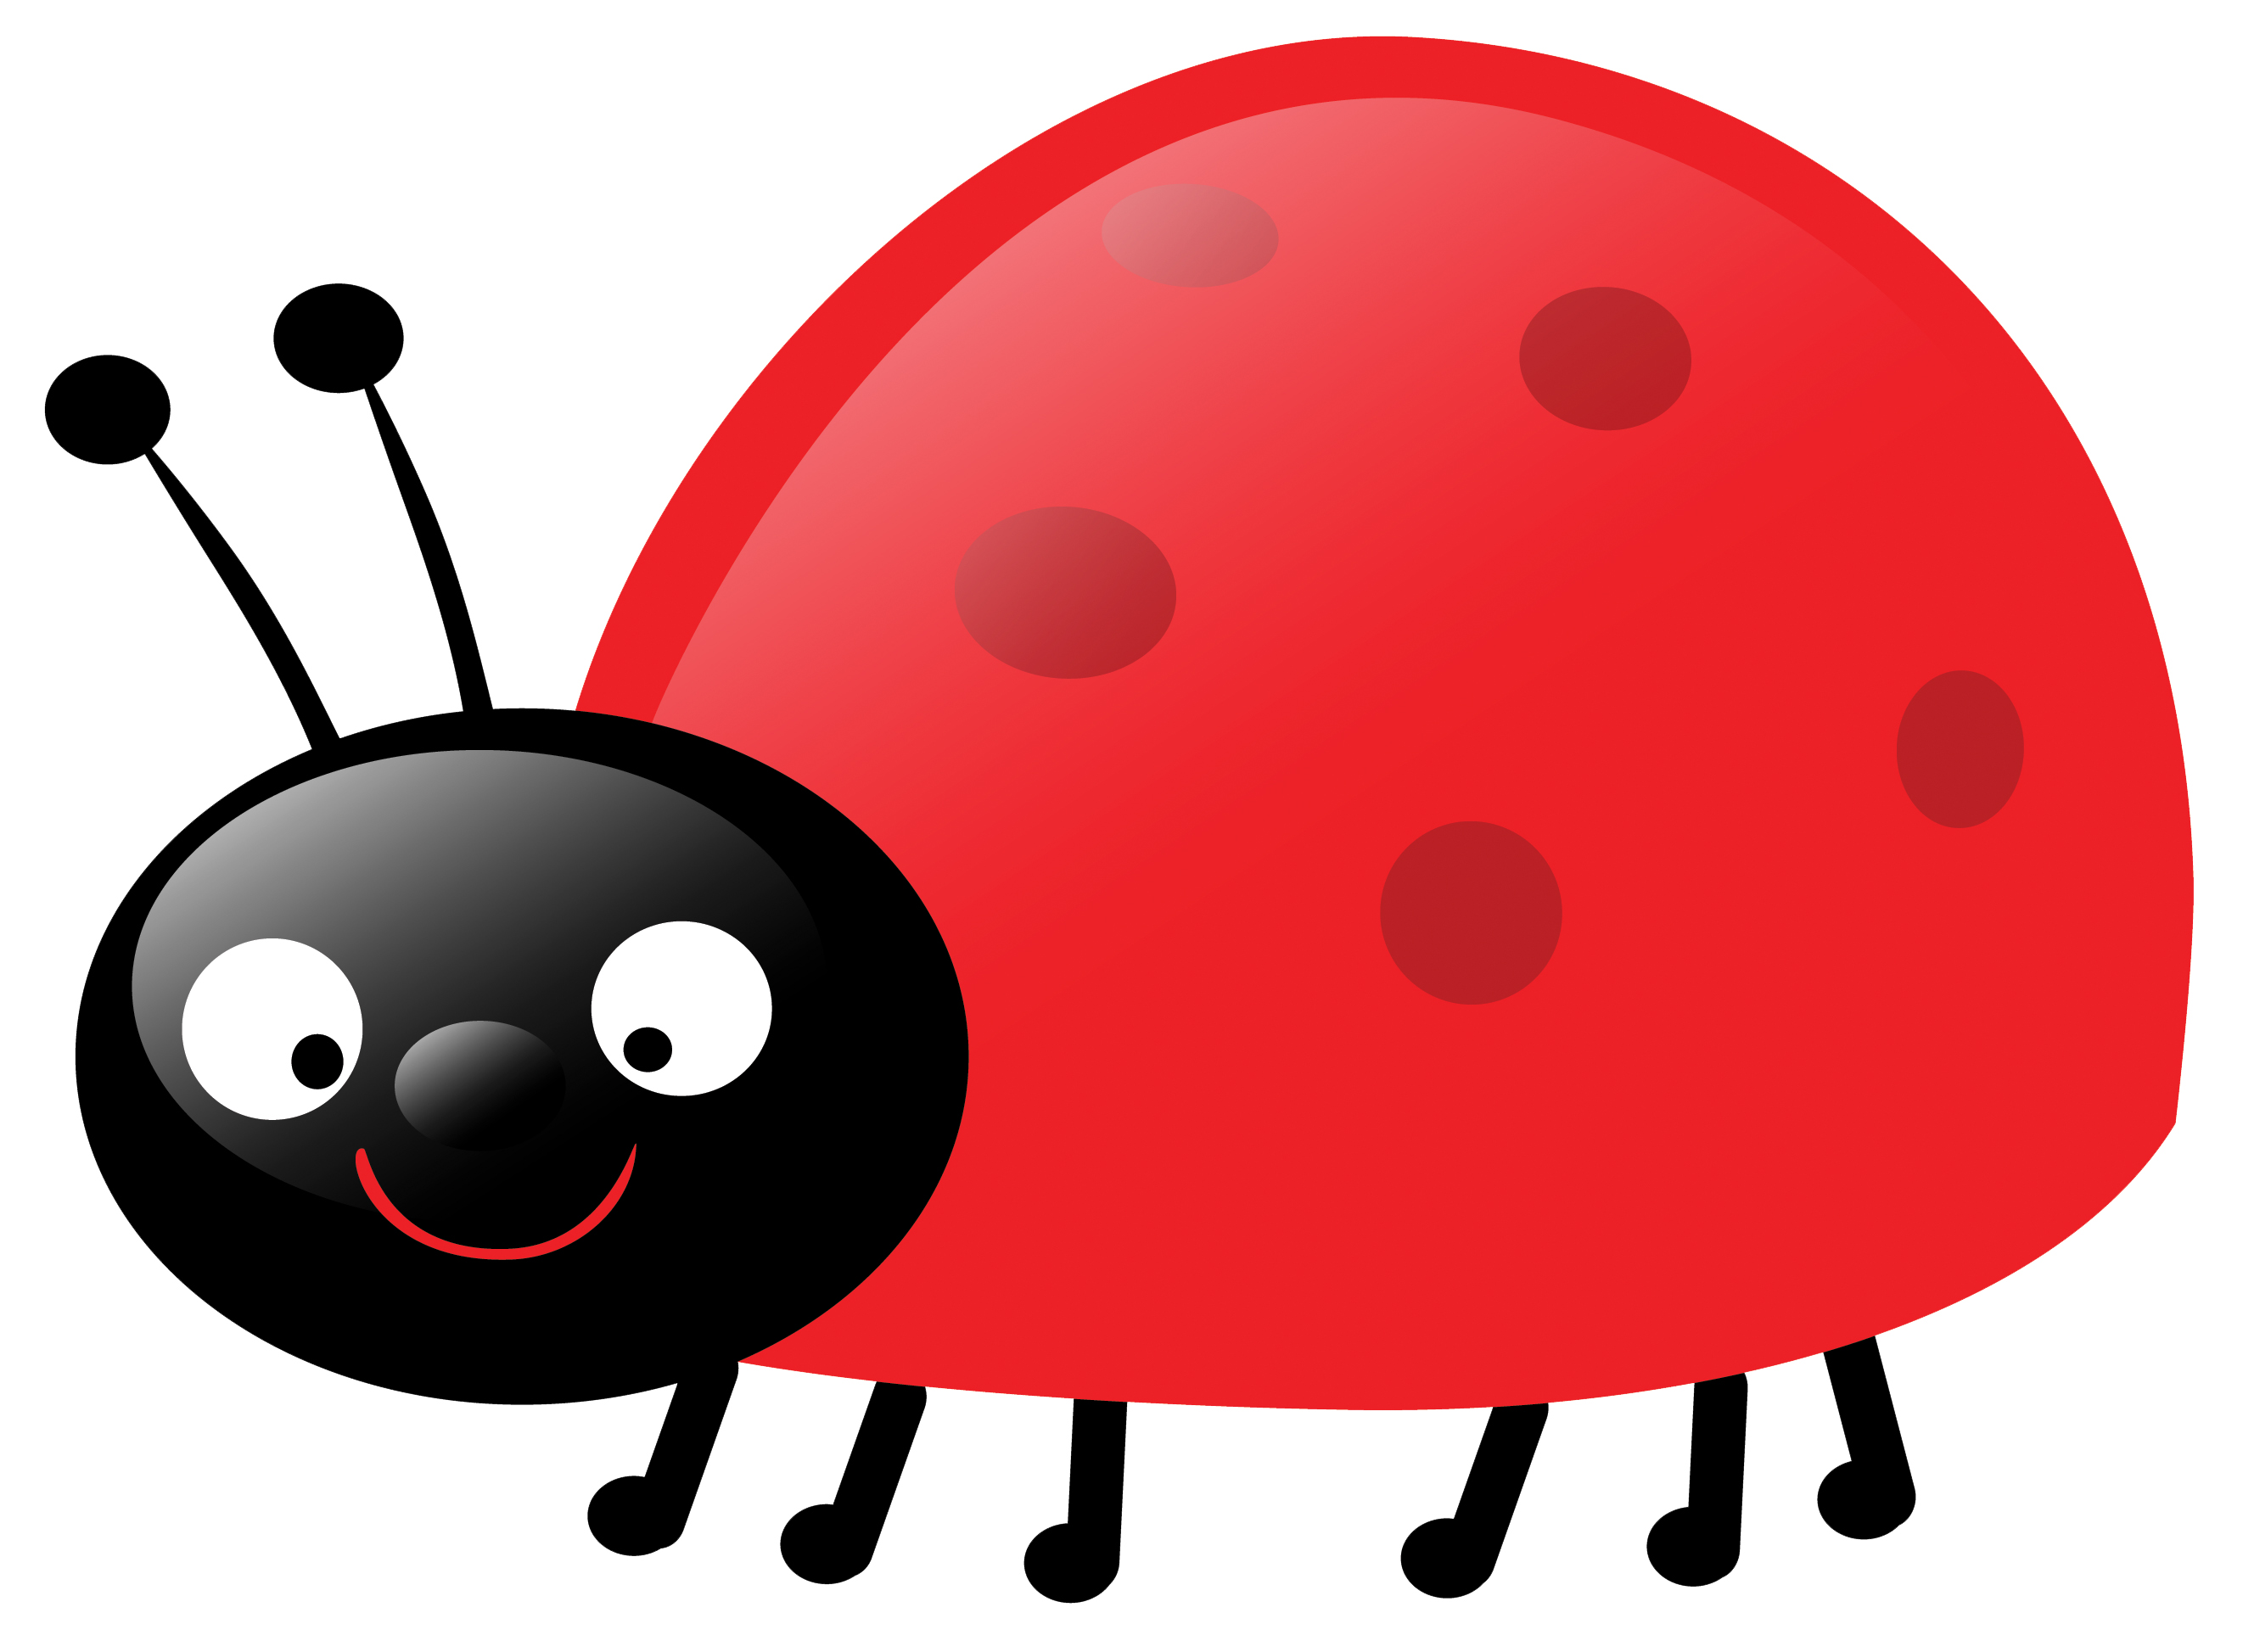 Ladybug clipart #3, Download drawings